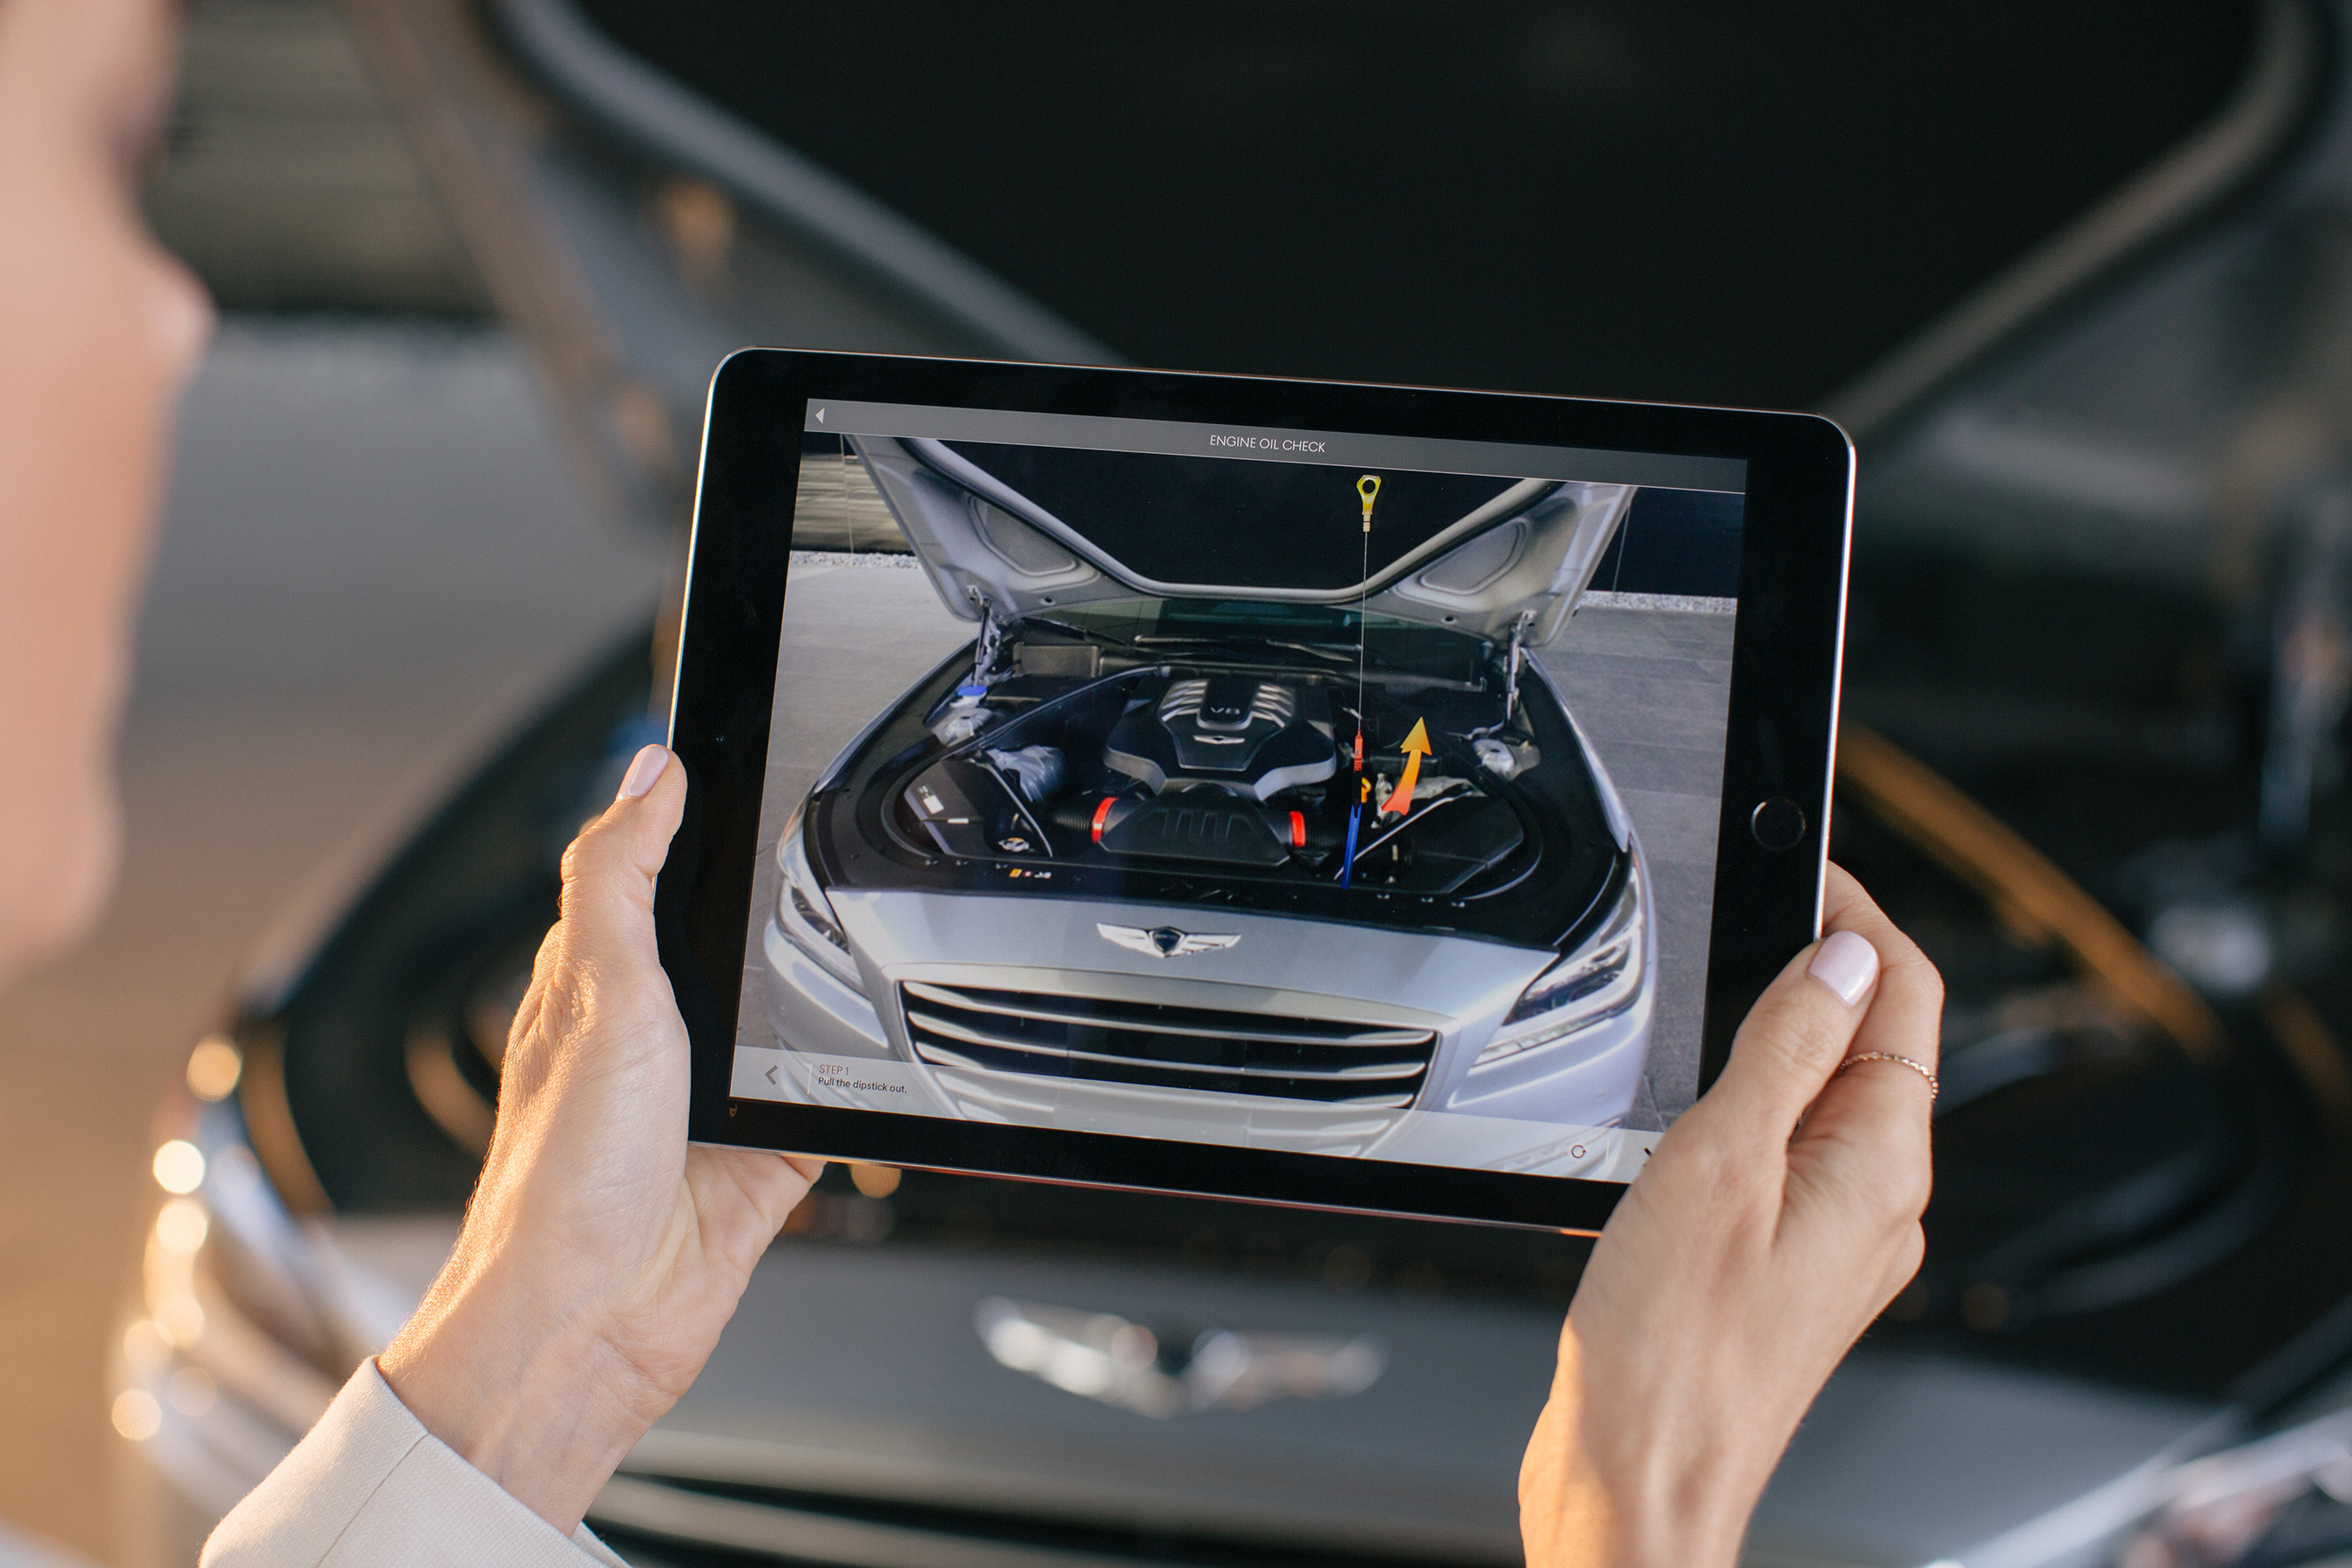 AR (AUGMENTED REALITY) MAINTENANCE INSTRUCTIONS ARE AVAILABLE FOR EACH PART OF THE ENGINE.